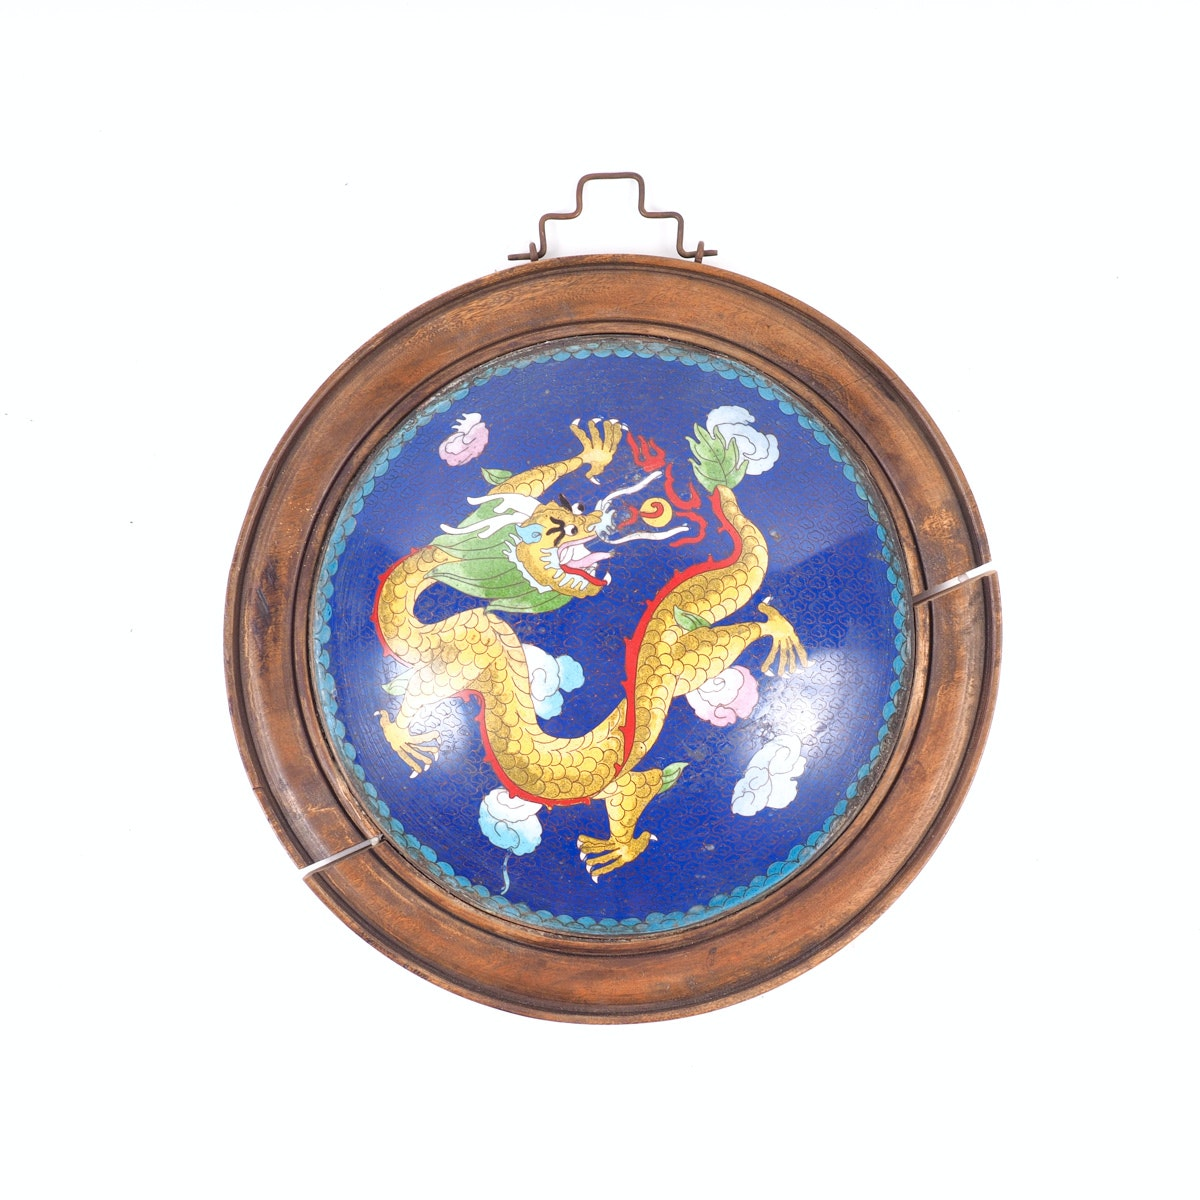 Chinese Cloisonné Wall Hanging Medallion With Dragon Motif